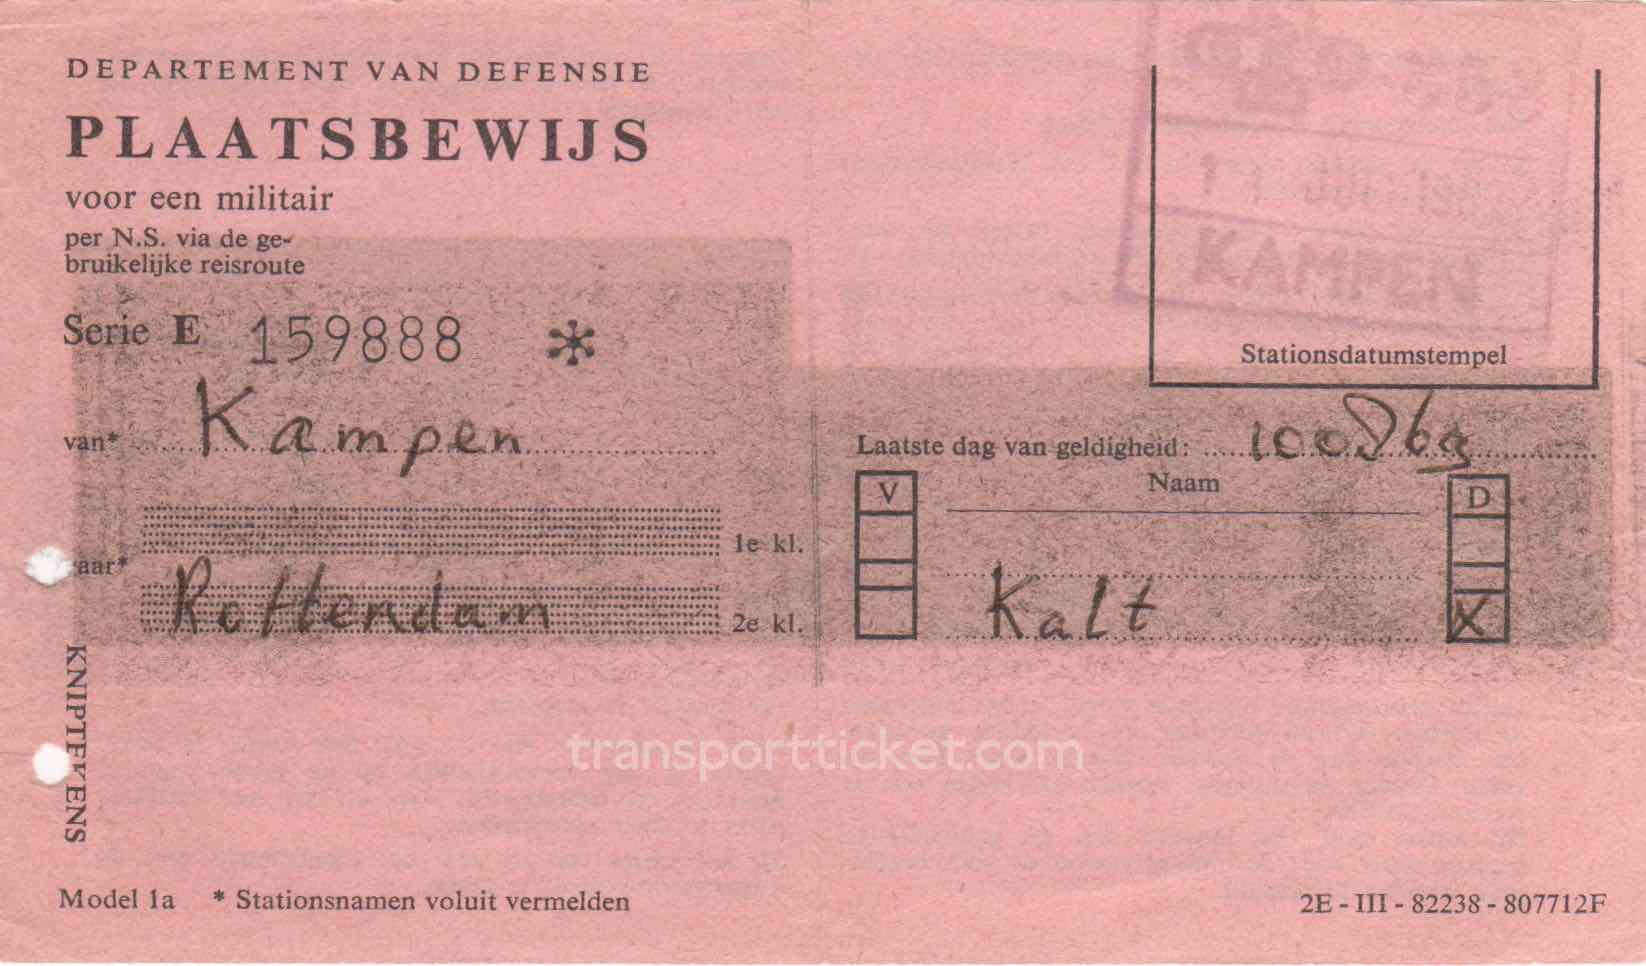 transport ticket issued by Dutch Department of Defense (1969)